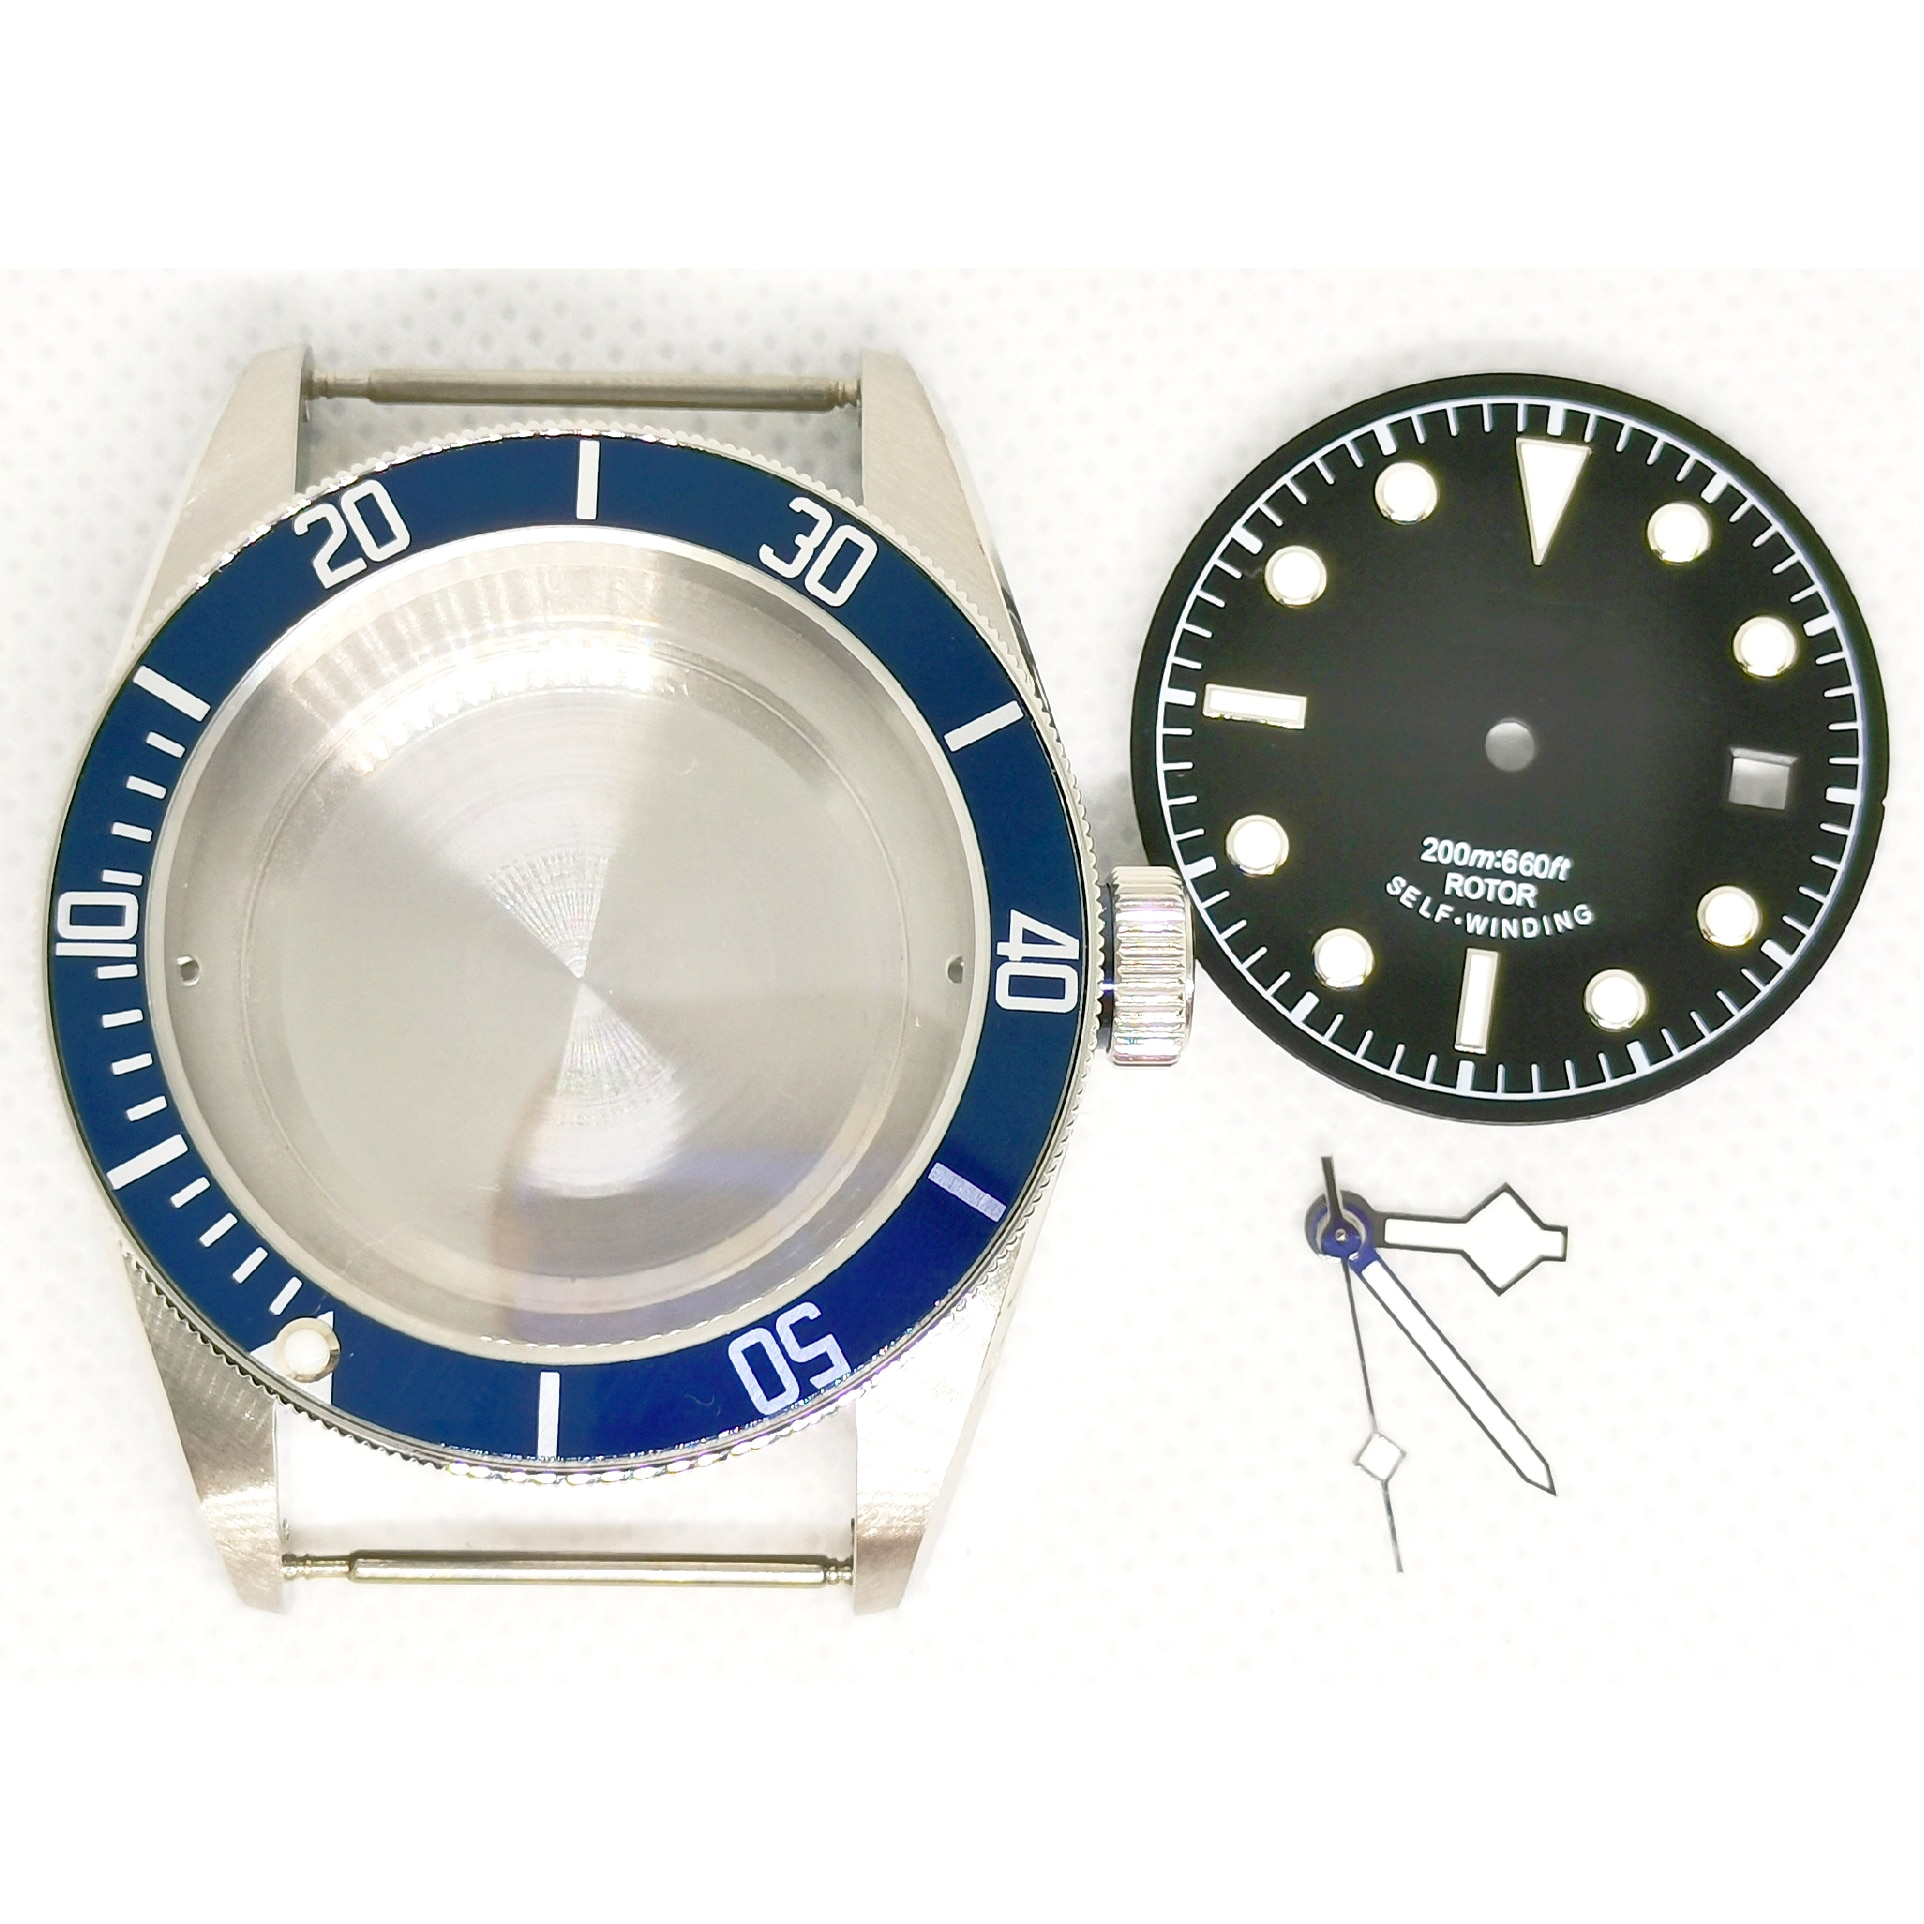 40MM  Man's Watch 316 Stainless Steel Case Dial And Hands Set For Automatic Movement ETA 2836 ST2130 enlarge